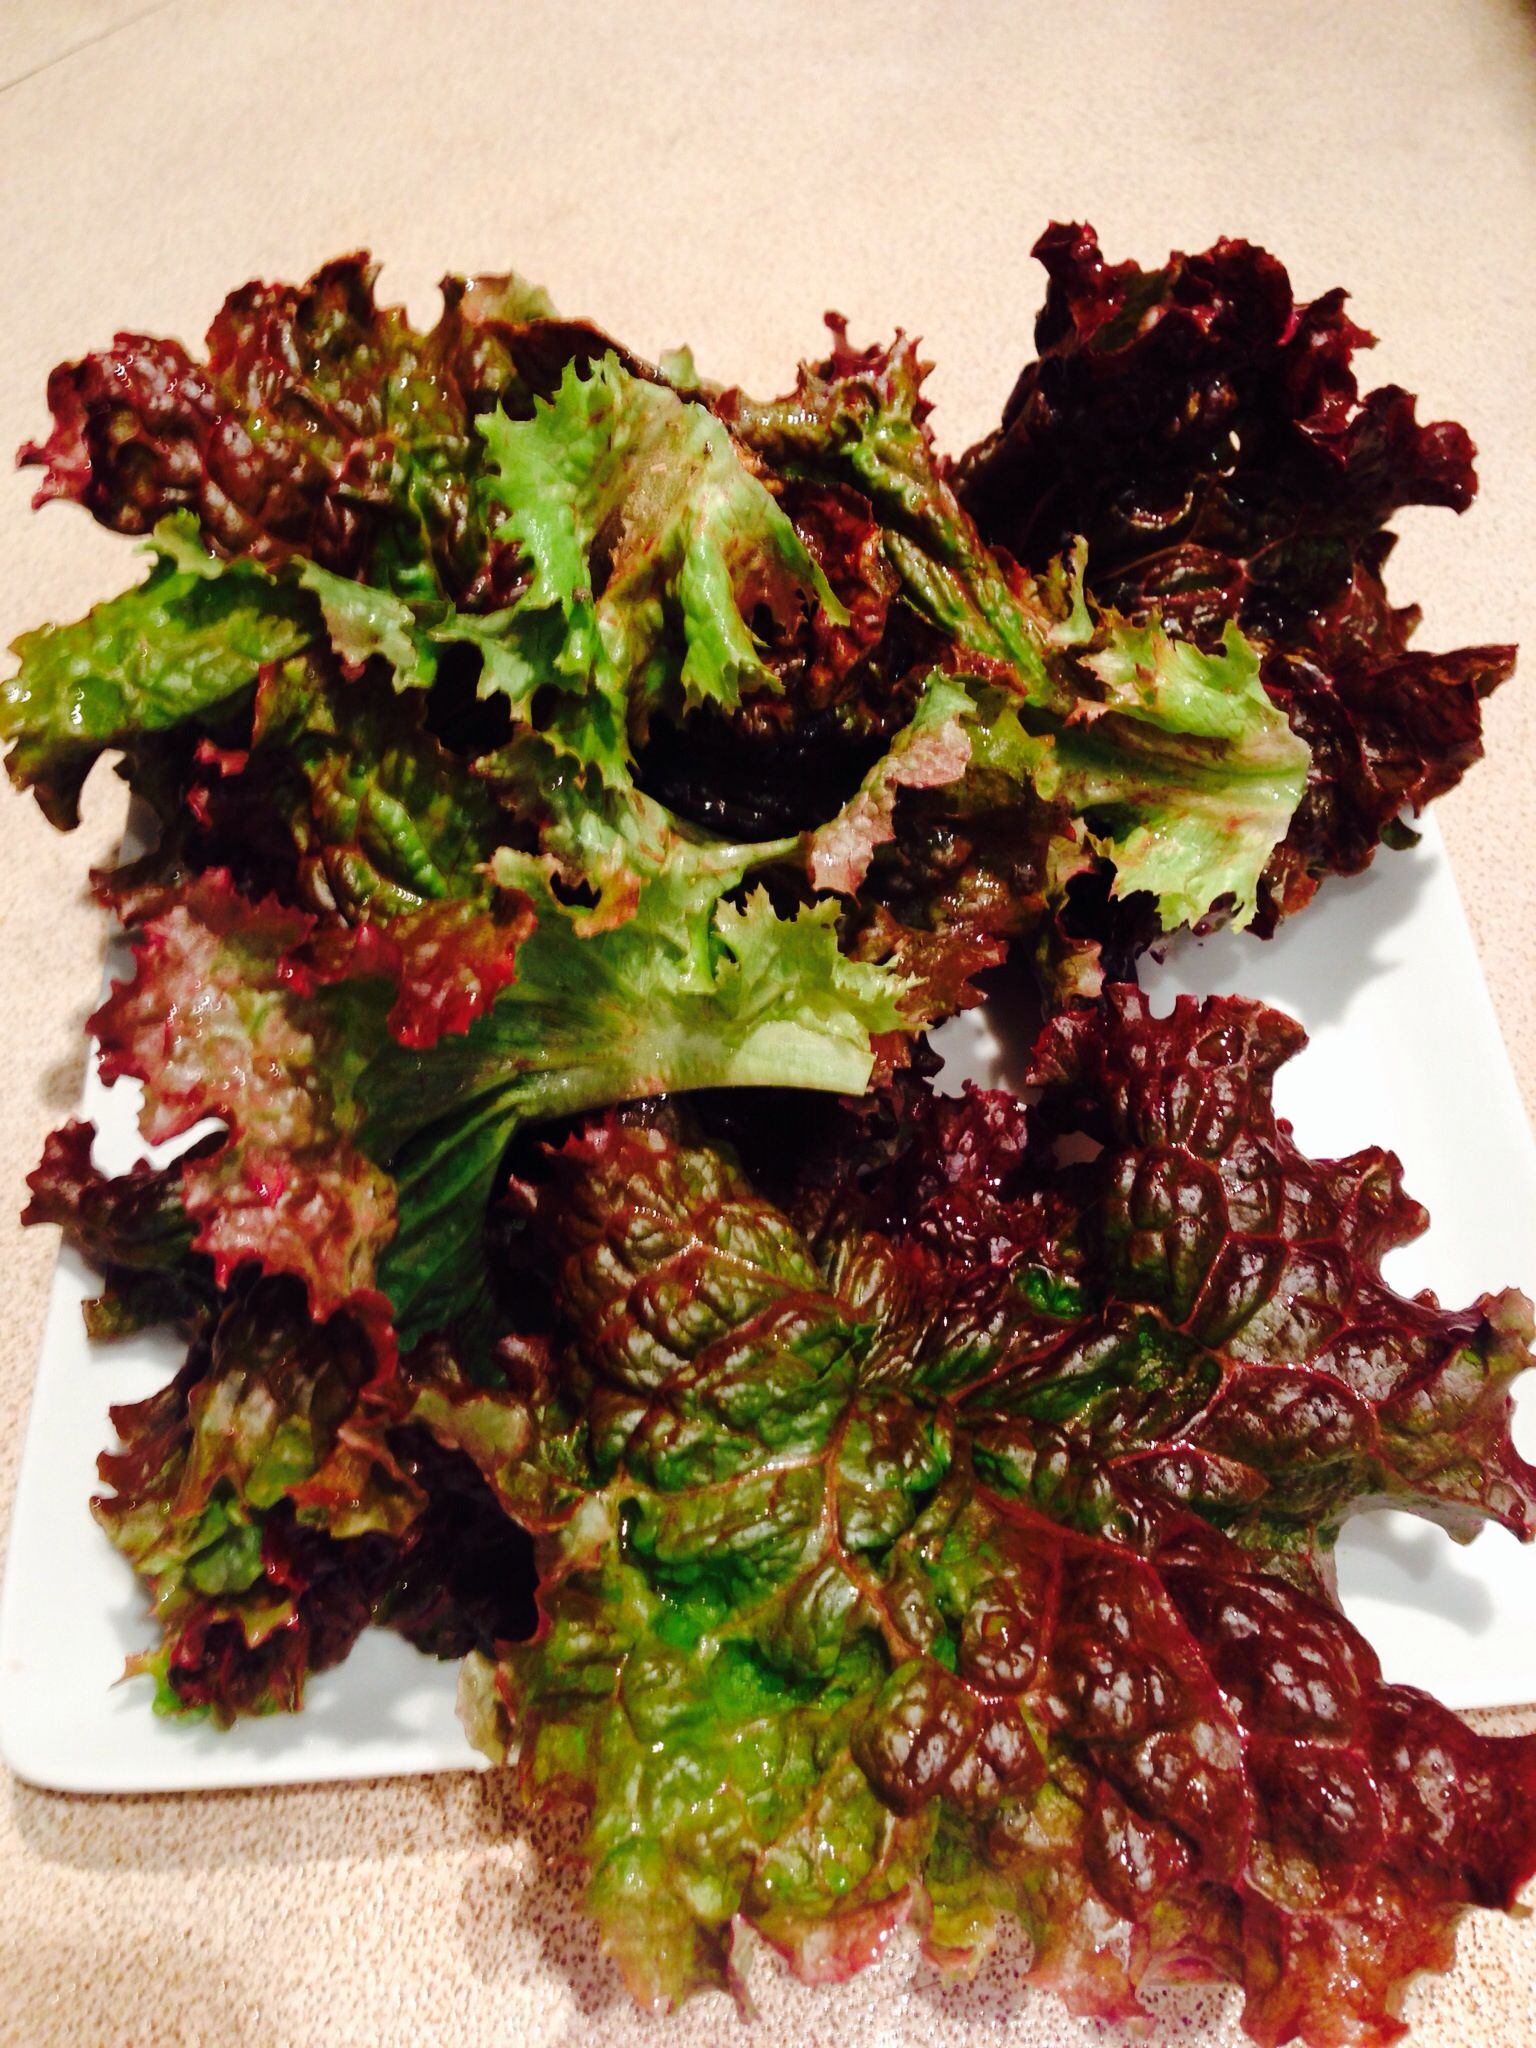 Winter gardens are the easiest gardens. Grow red leaf lettuce ...